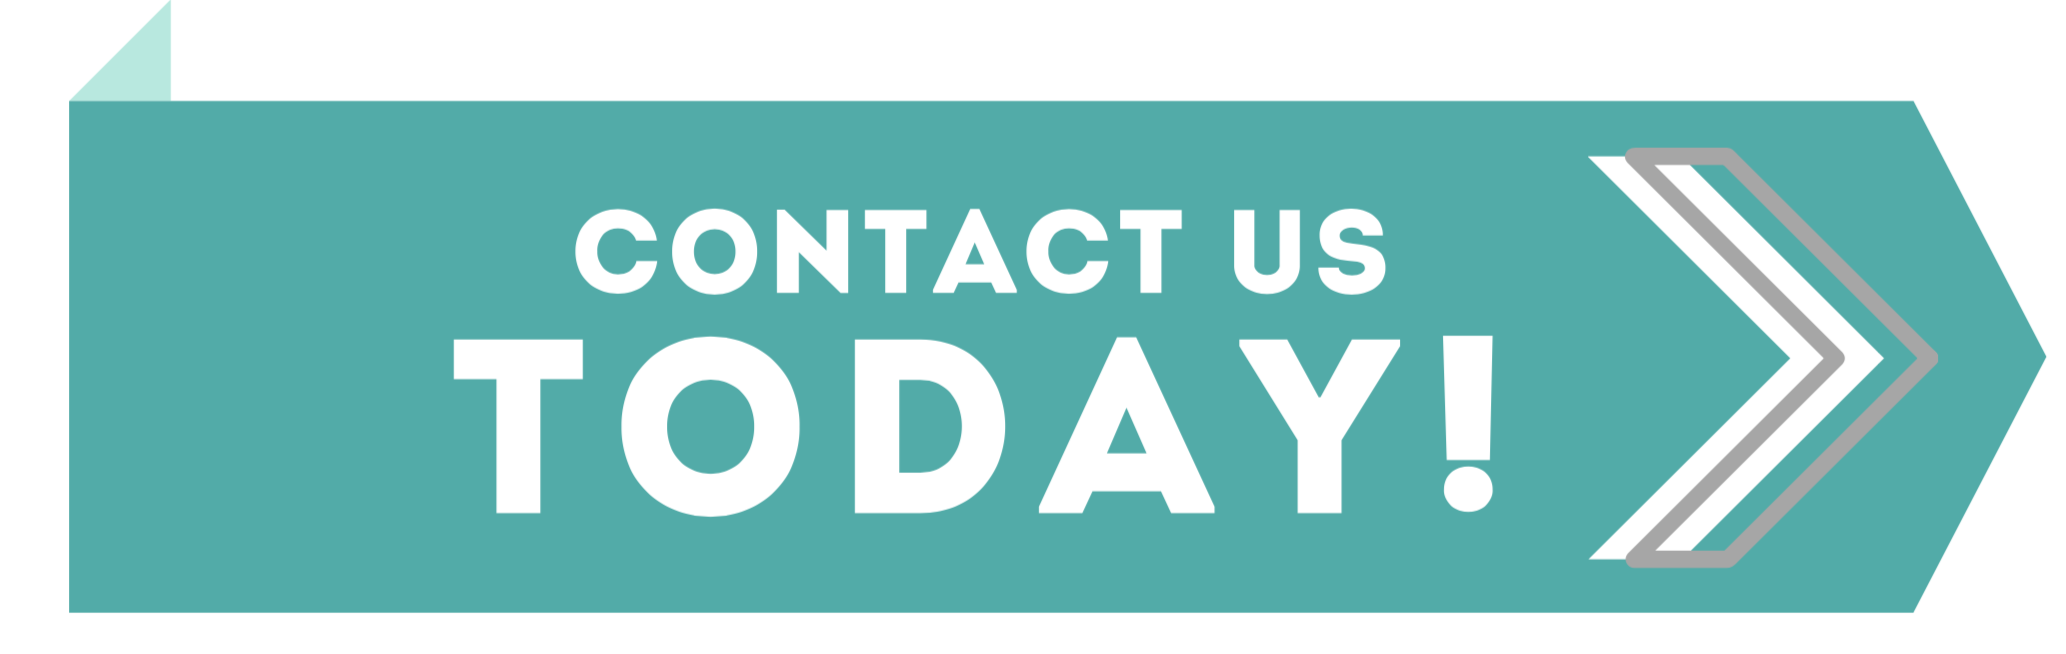 Contact Us DealGifts Button